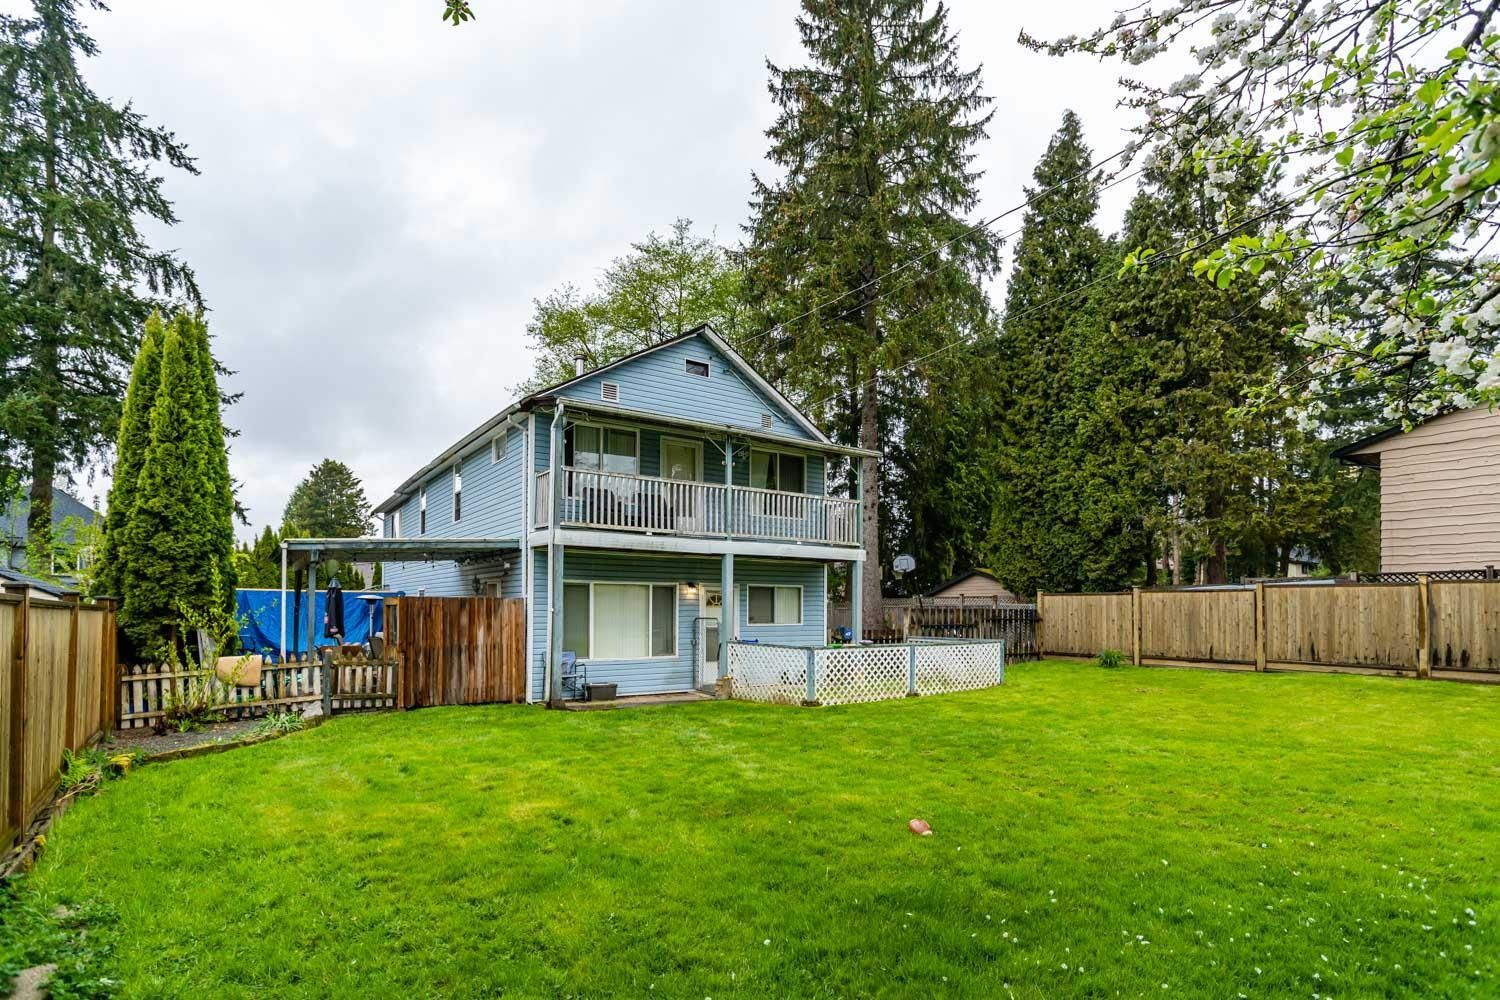 Main Photo: 9049 148 Street in Surrey: Bear Creek Green Timbers House for sale : MLS®# R2616008